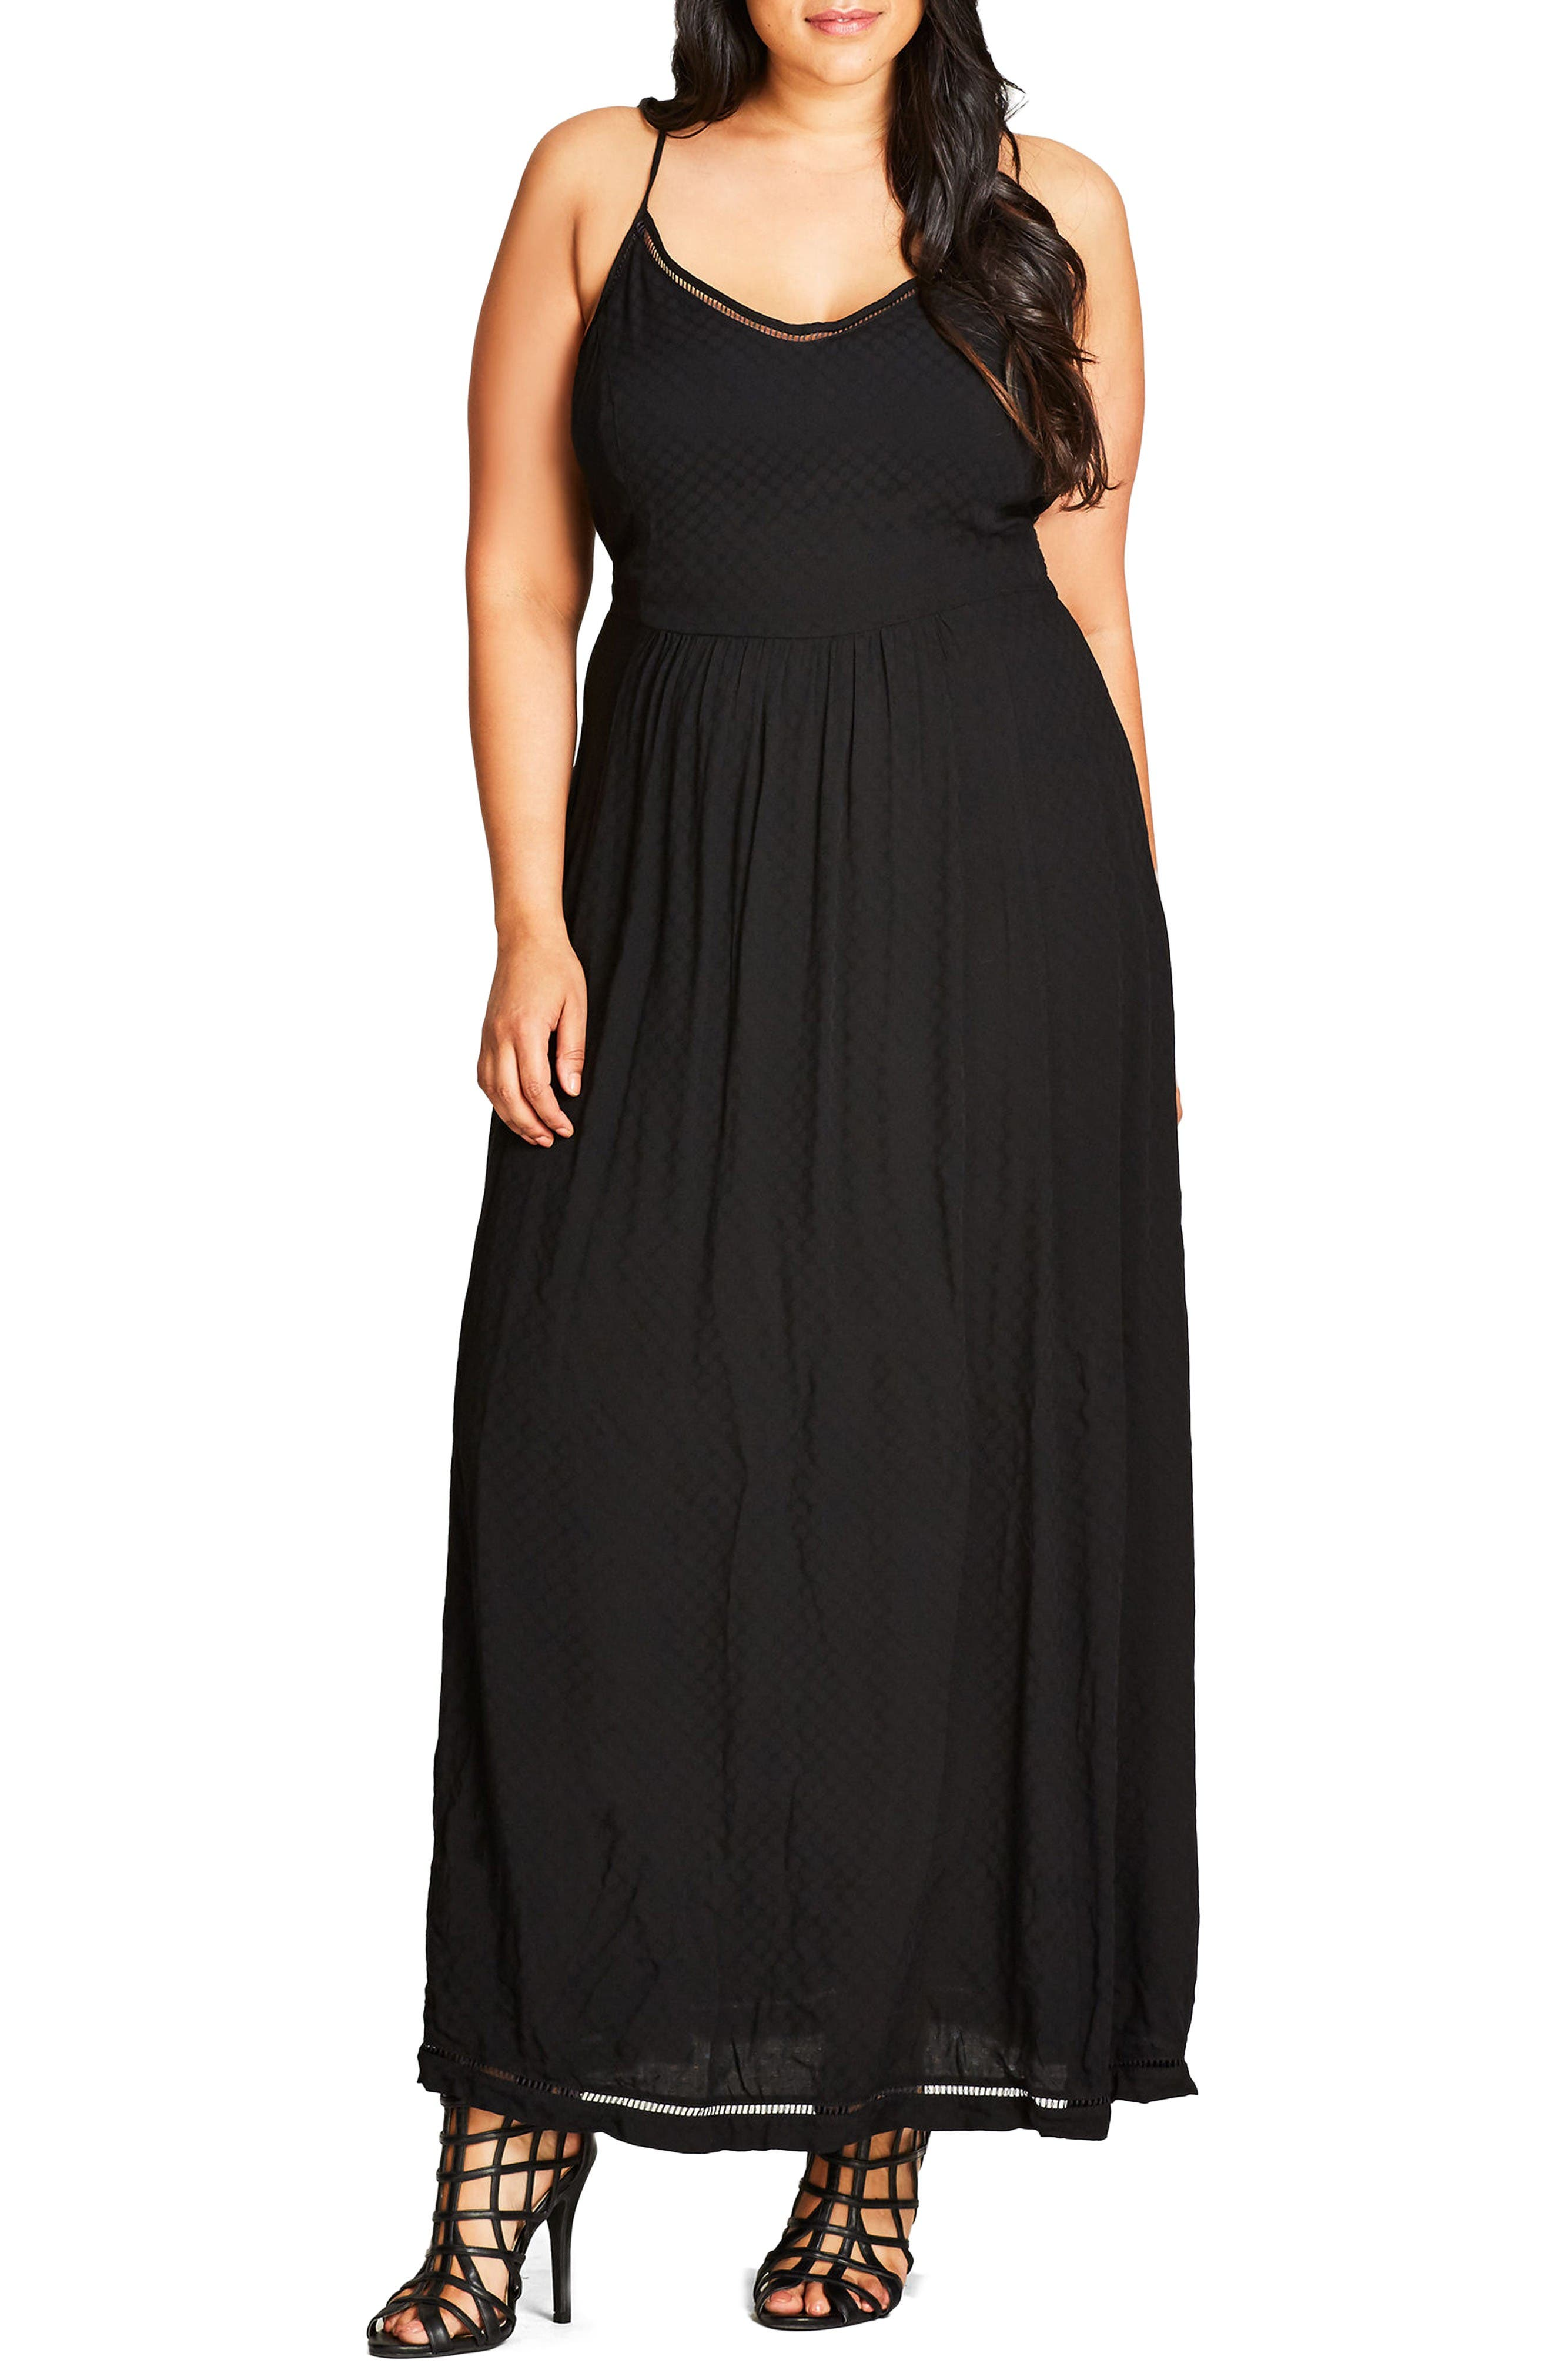 Alternate Image 1 Selected - City Chic Picnic Party Maxi Dress (Plus Size)